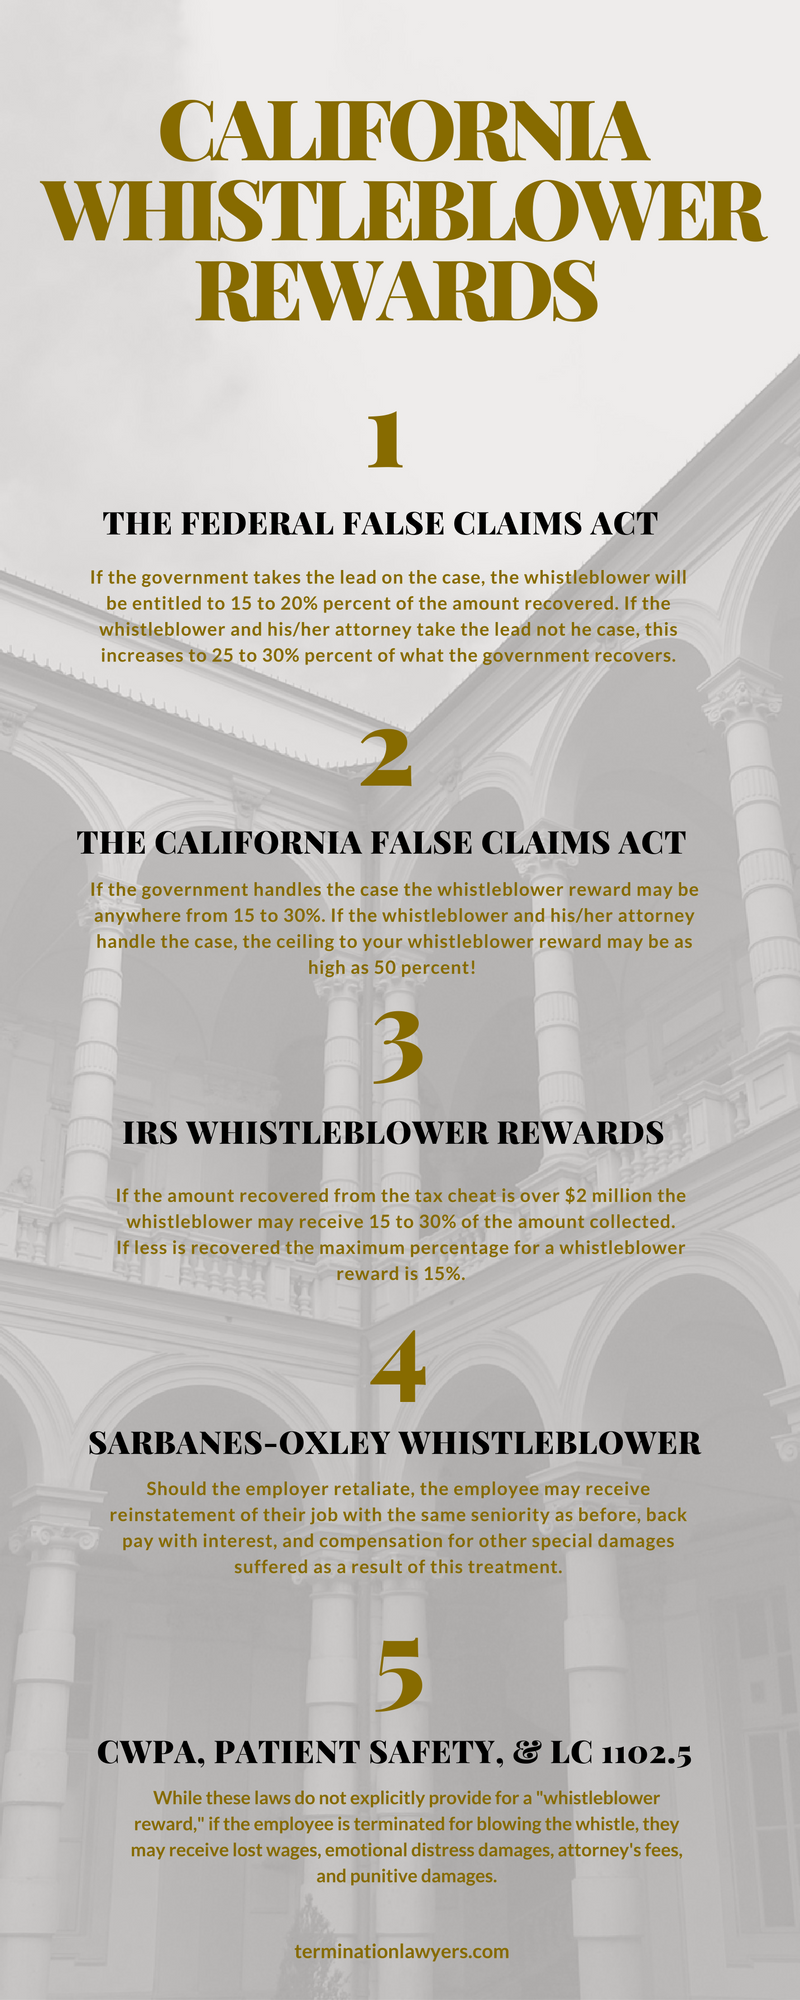 Whistleblower Rewards Infographic | Los Angeles Wrongful Termination Lawyer